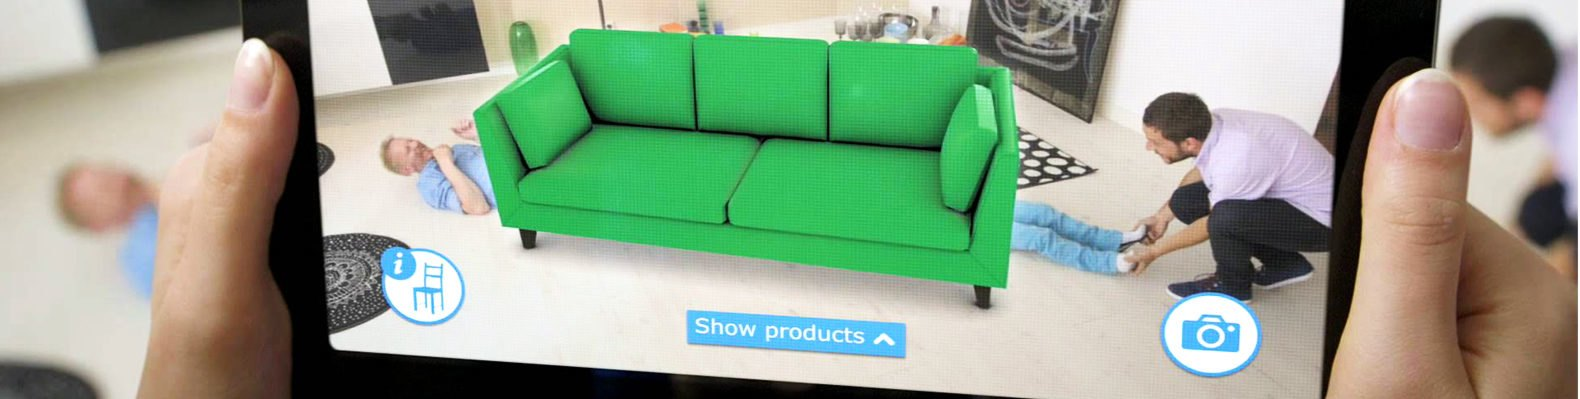 IKEAs New App Will Let You Preview Furniture In Your Home Before Buy